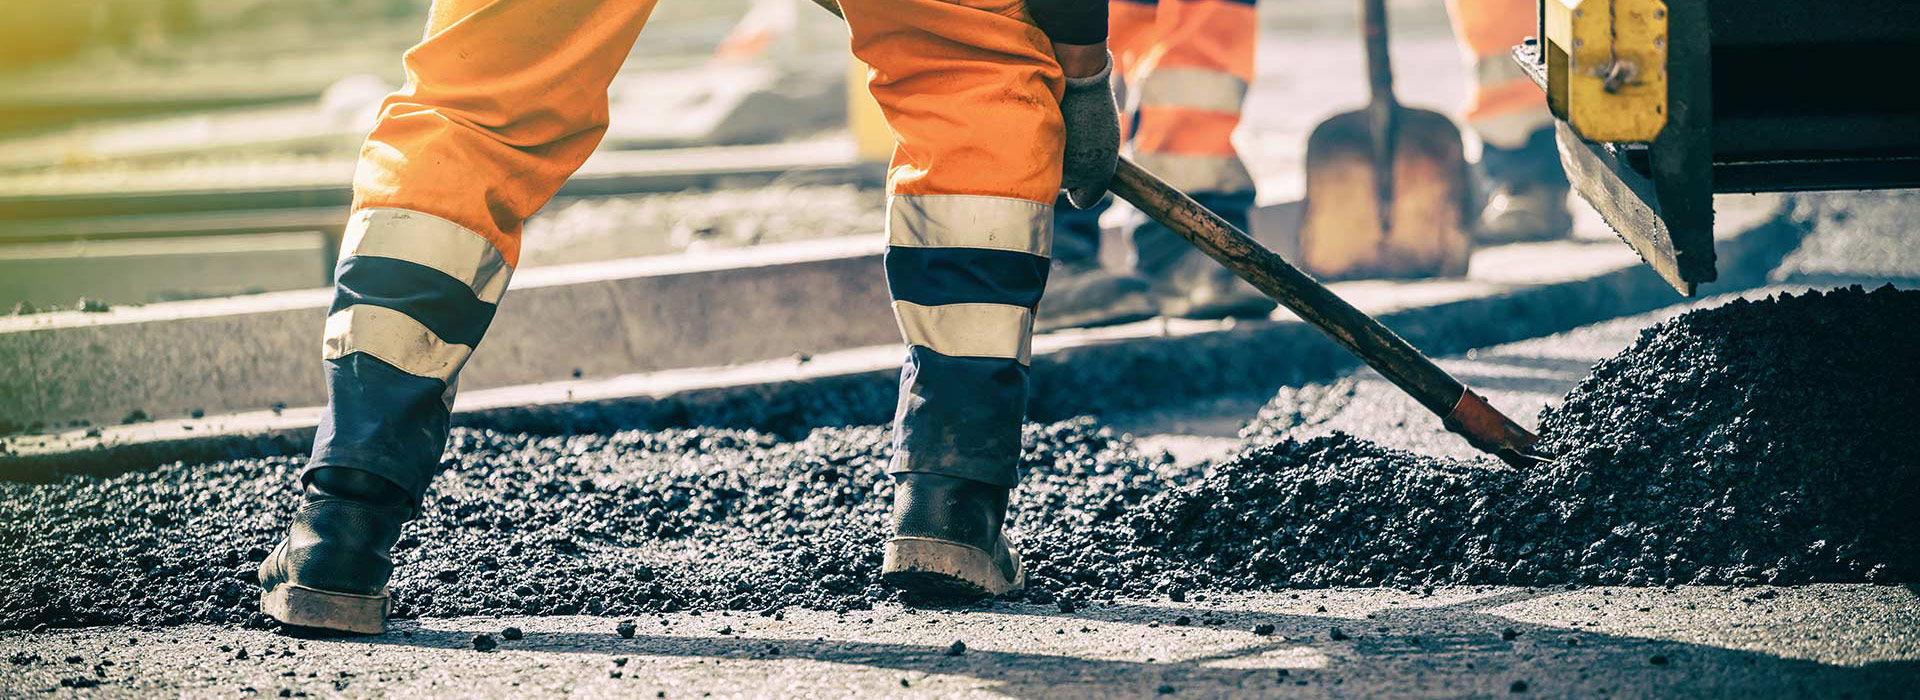 Safety Footwear Products | Delta Health & Safety Equipment